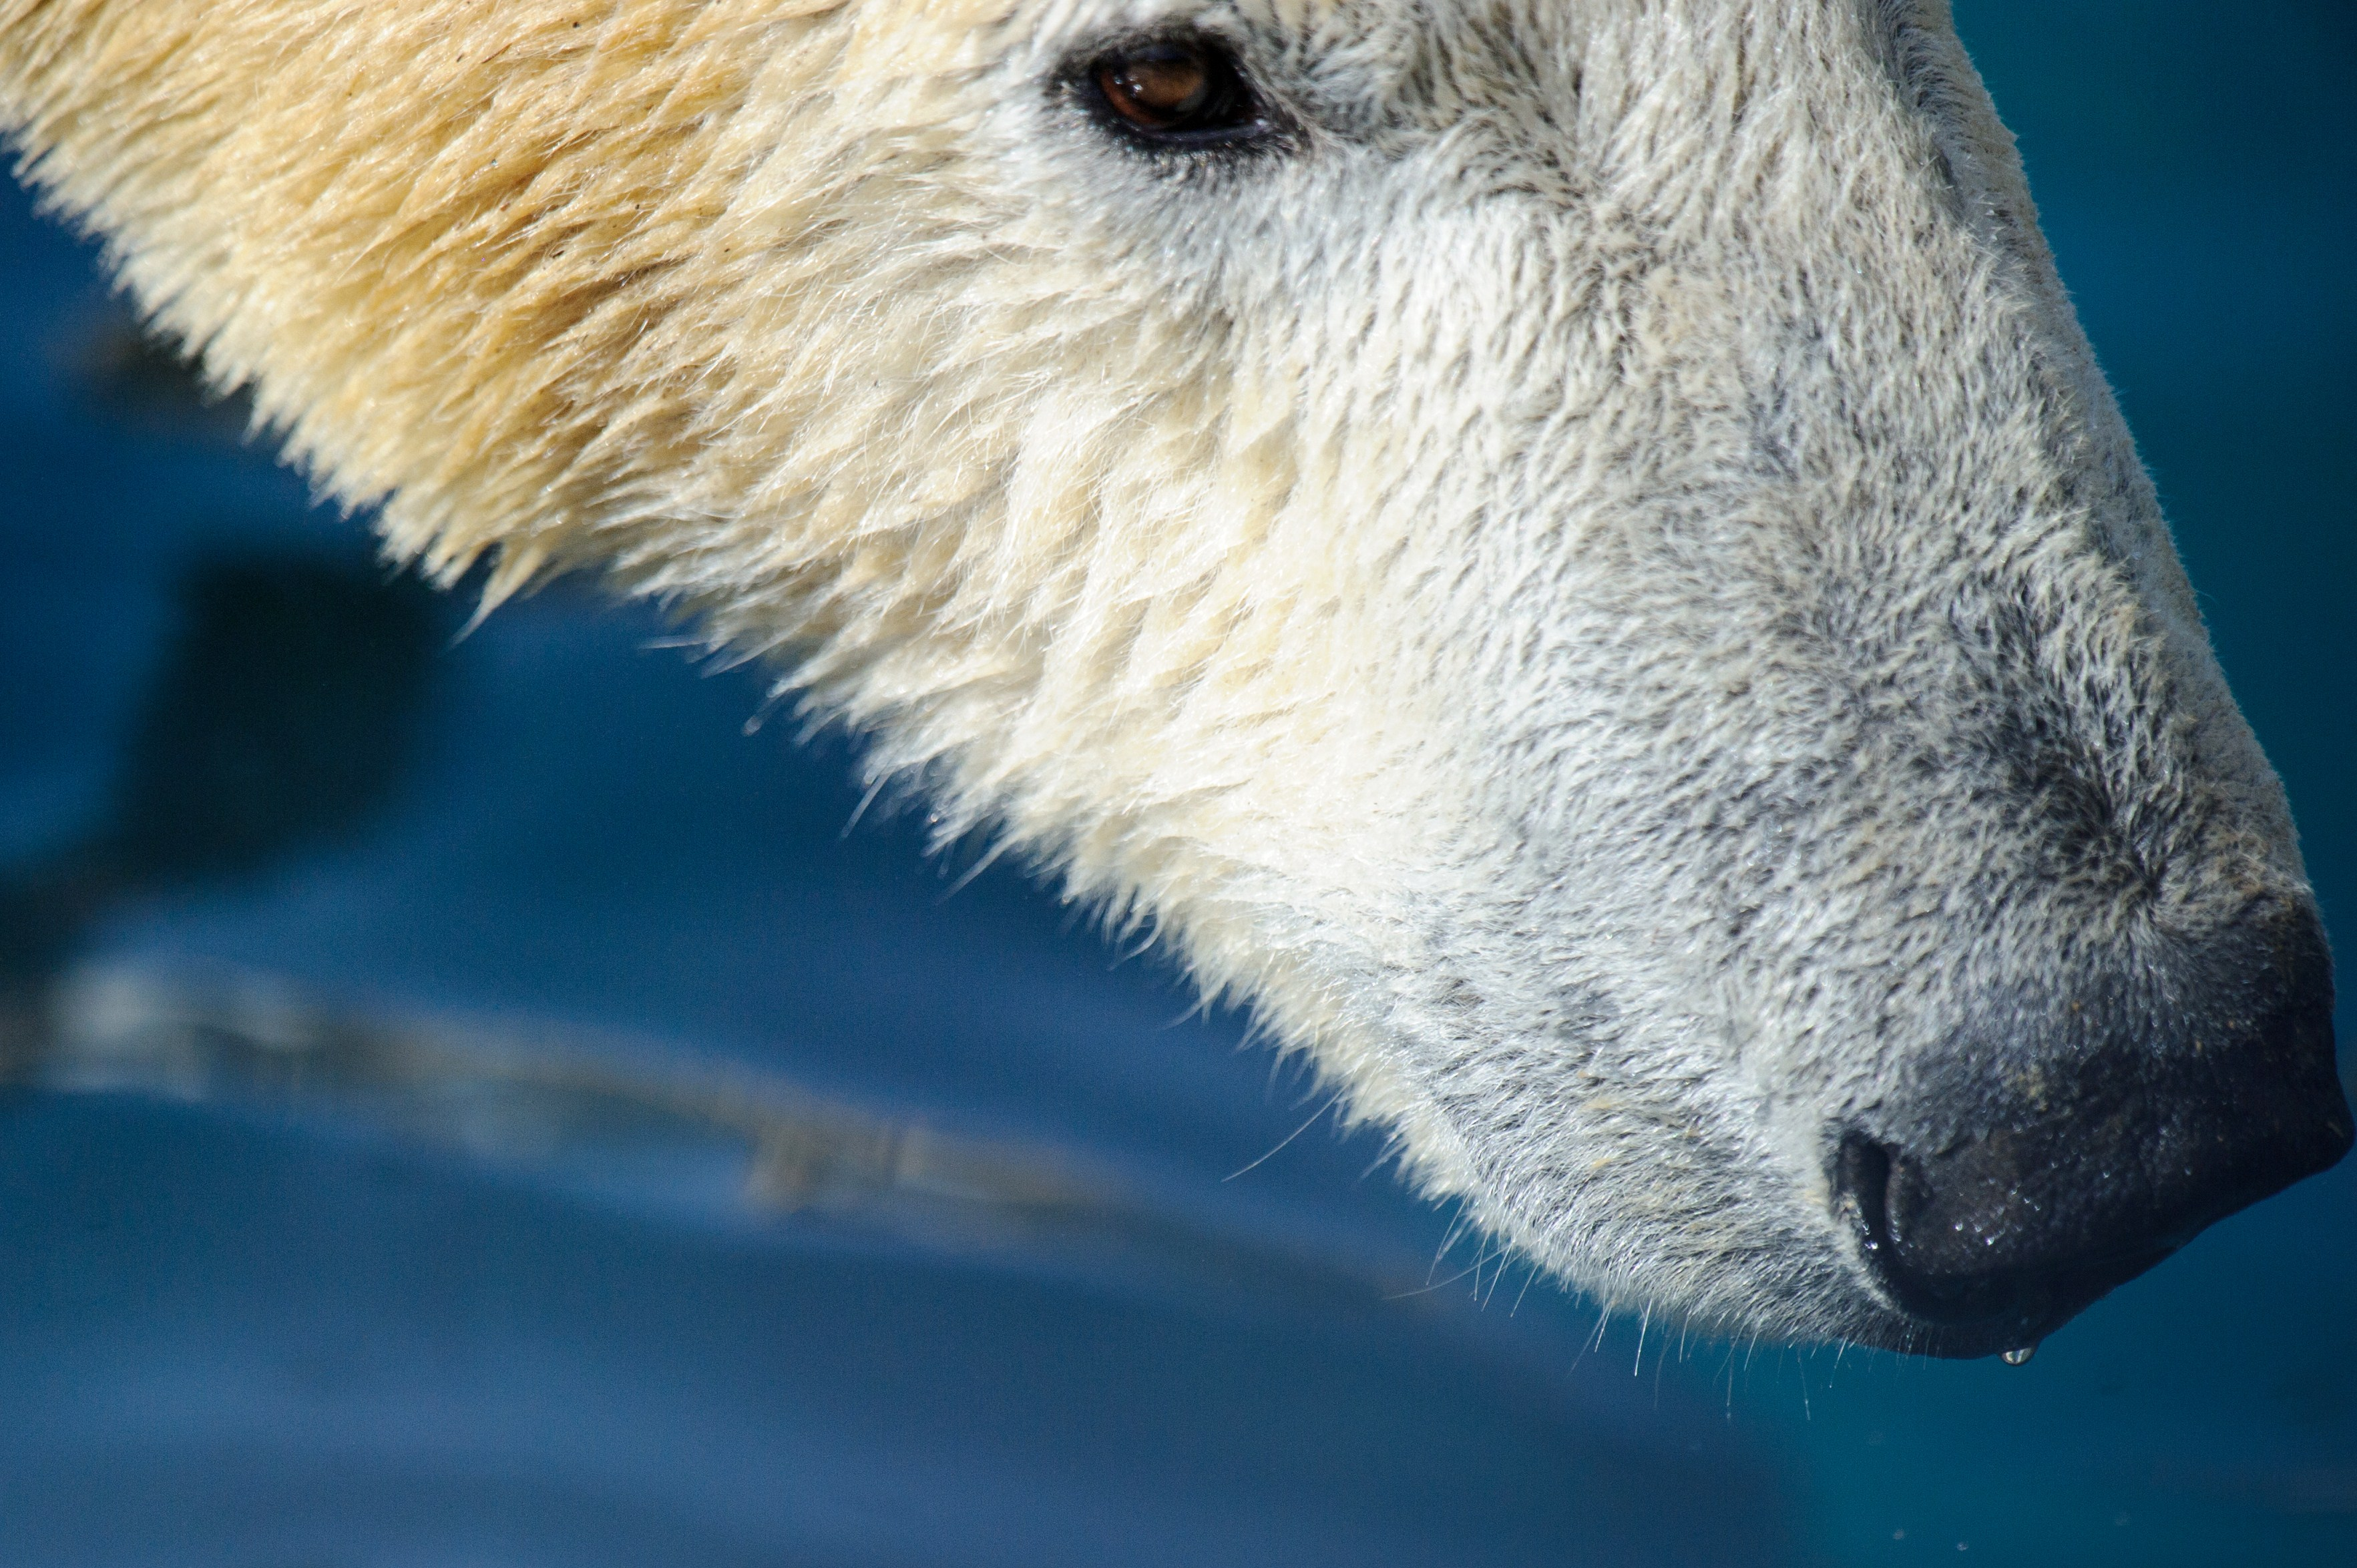 Smelling pawprints serves as a kind of message board for polar bears says a new study. (Sebastien Bozon/Getty Images)